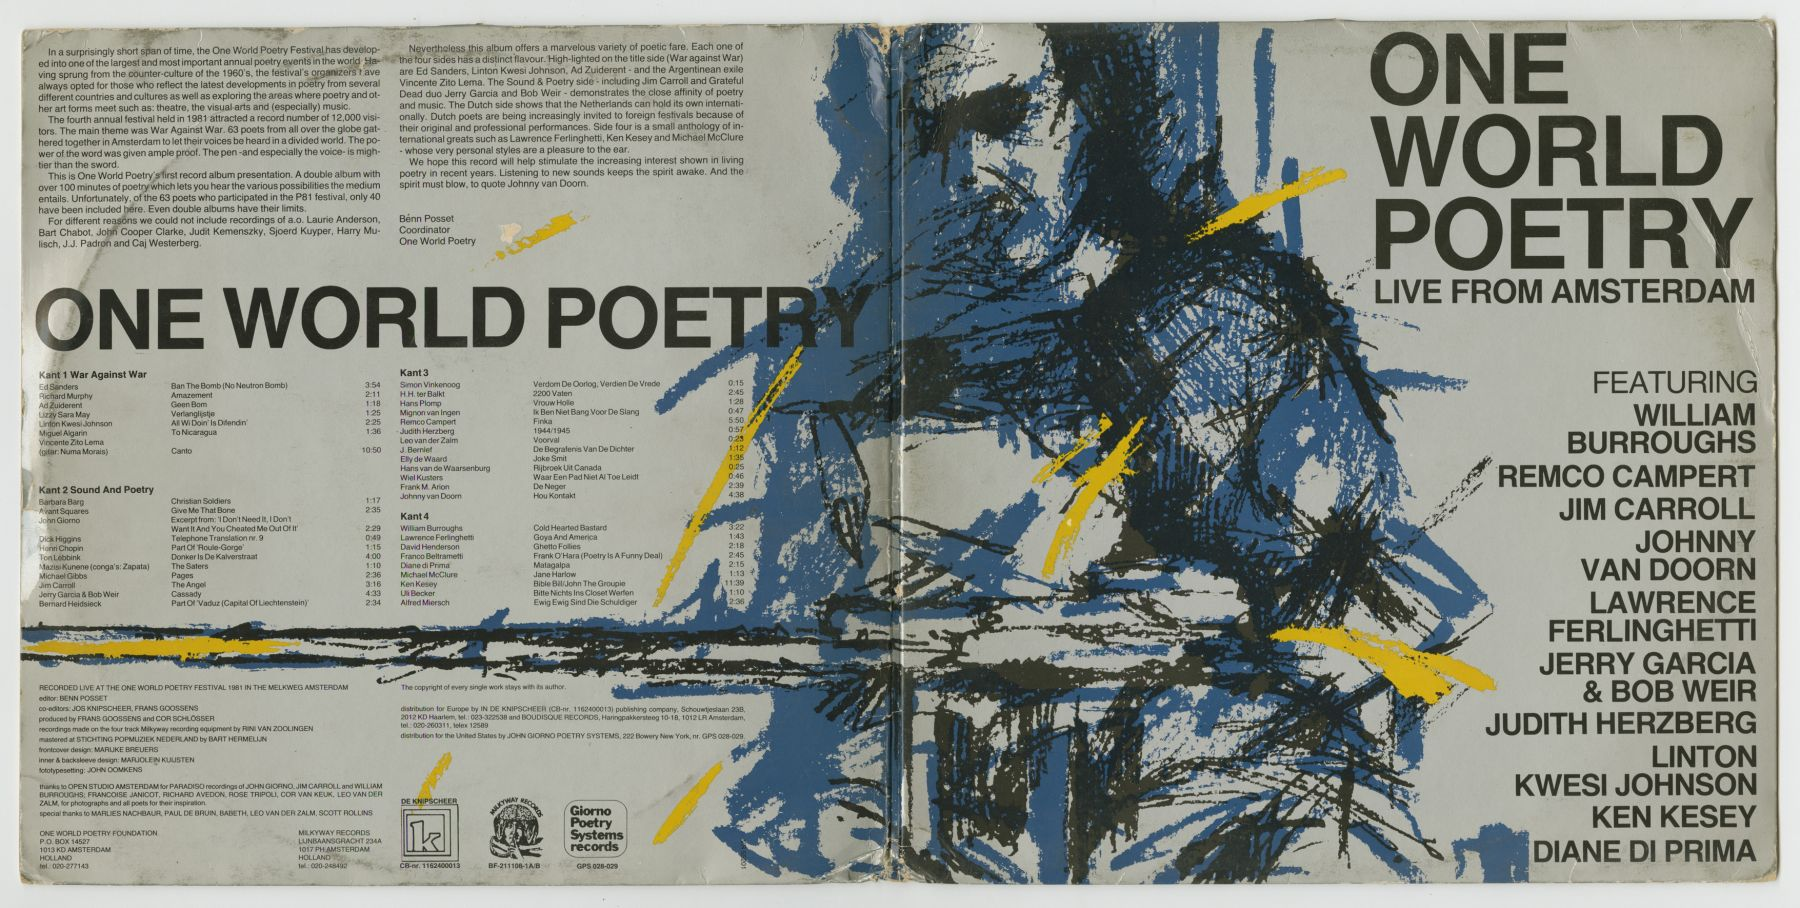 One World Poetry Live from Amsterdam (1981), front and back covers